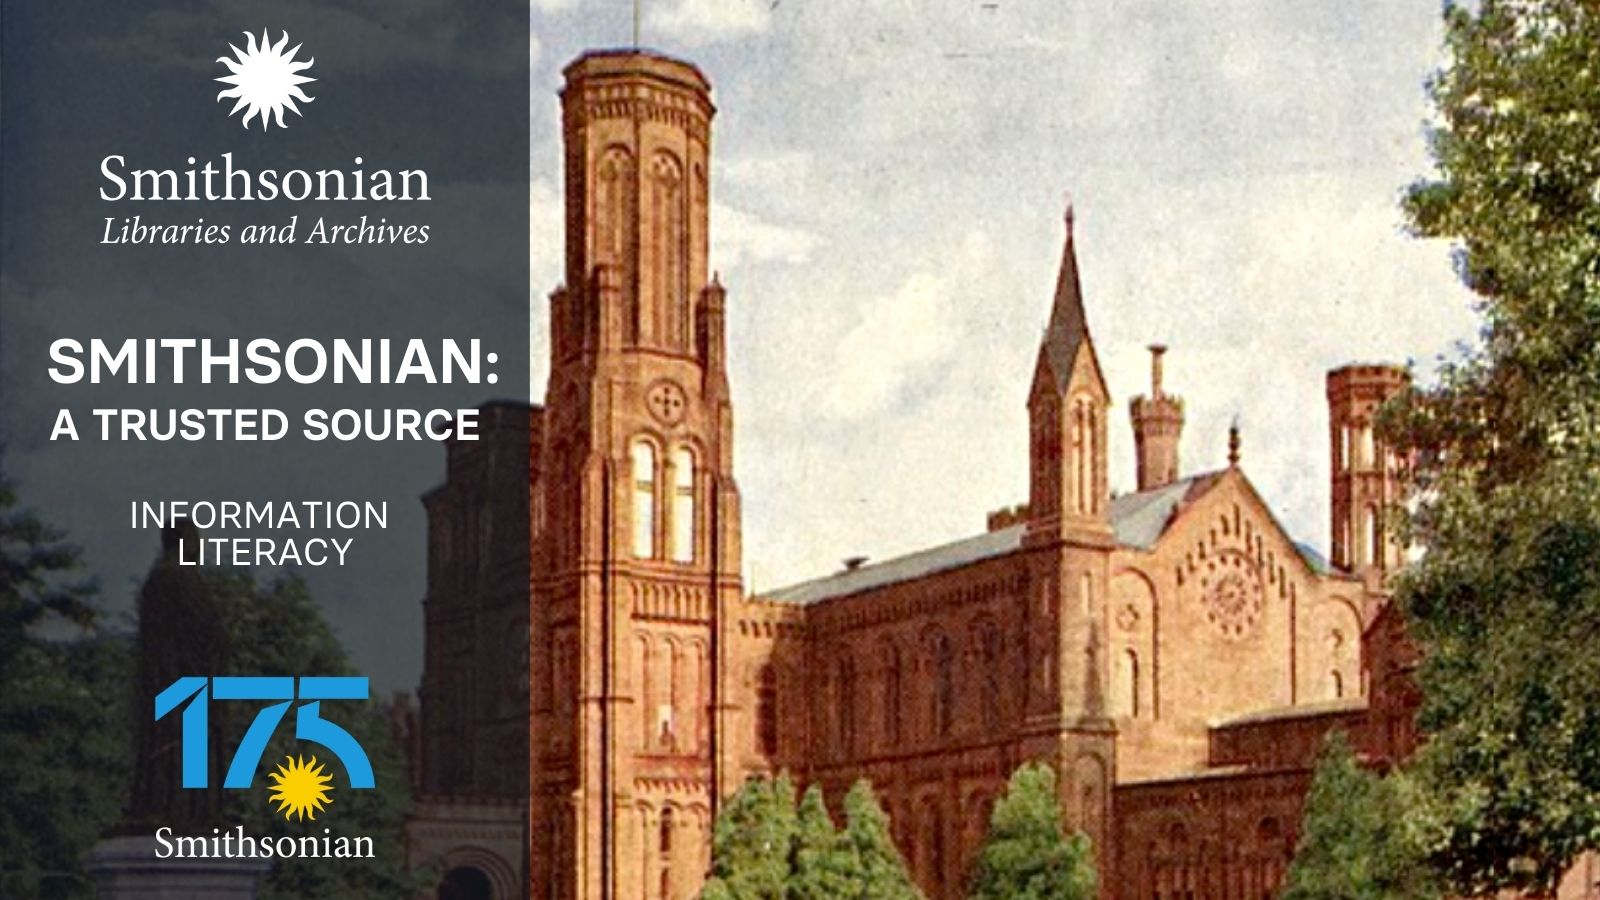 Information Literacy graphic, featuring image of Smithsonian Institution Building.